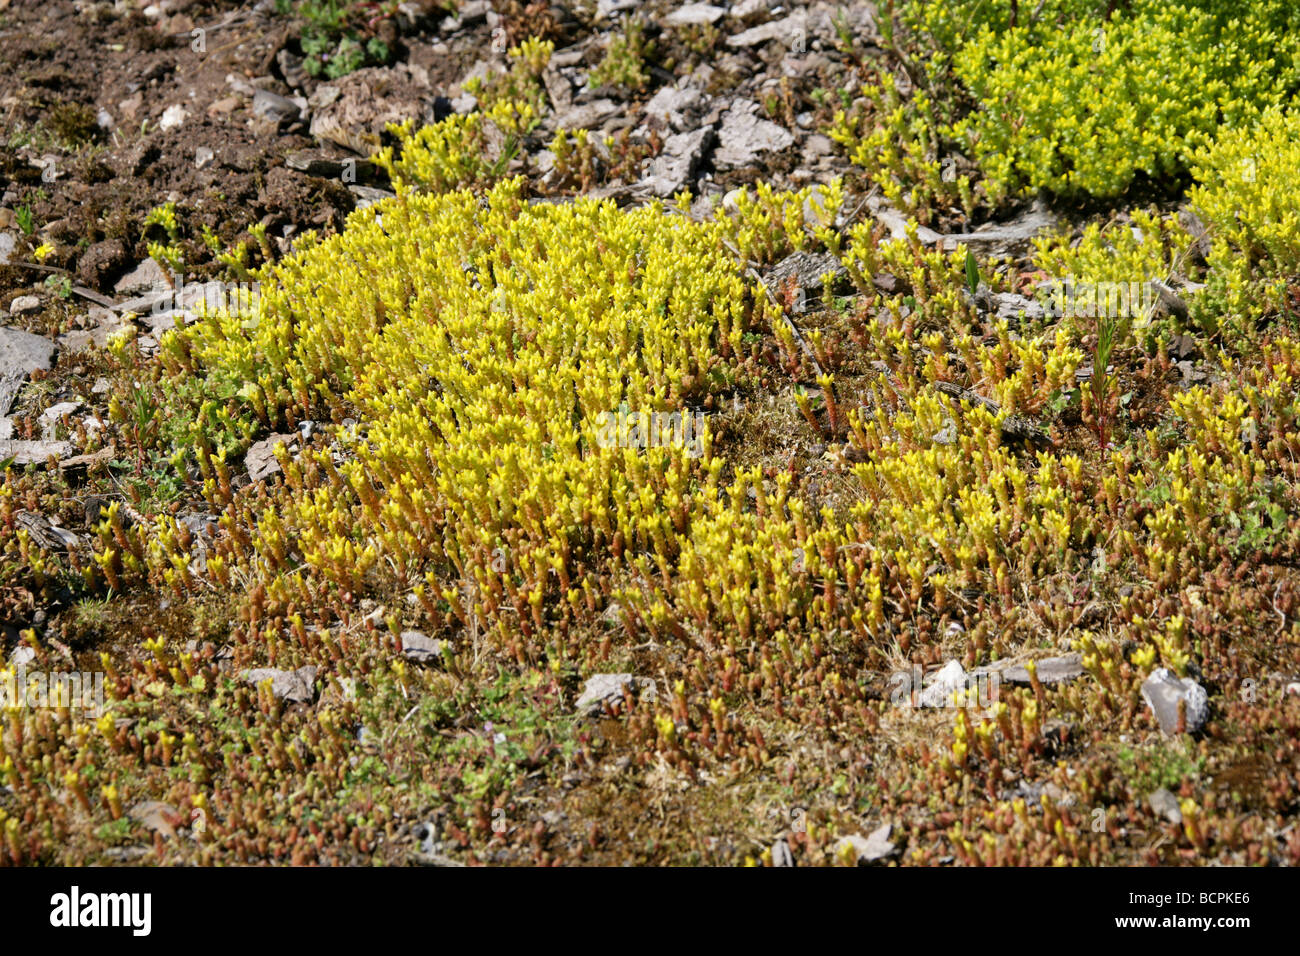 Biting Stonecrop aka Golden Carpet, Wall Pepper or Gold Moss, Sedum acre, Crassulaceae, Growing on Waste Ground - Stock Image